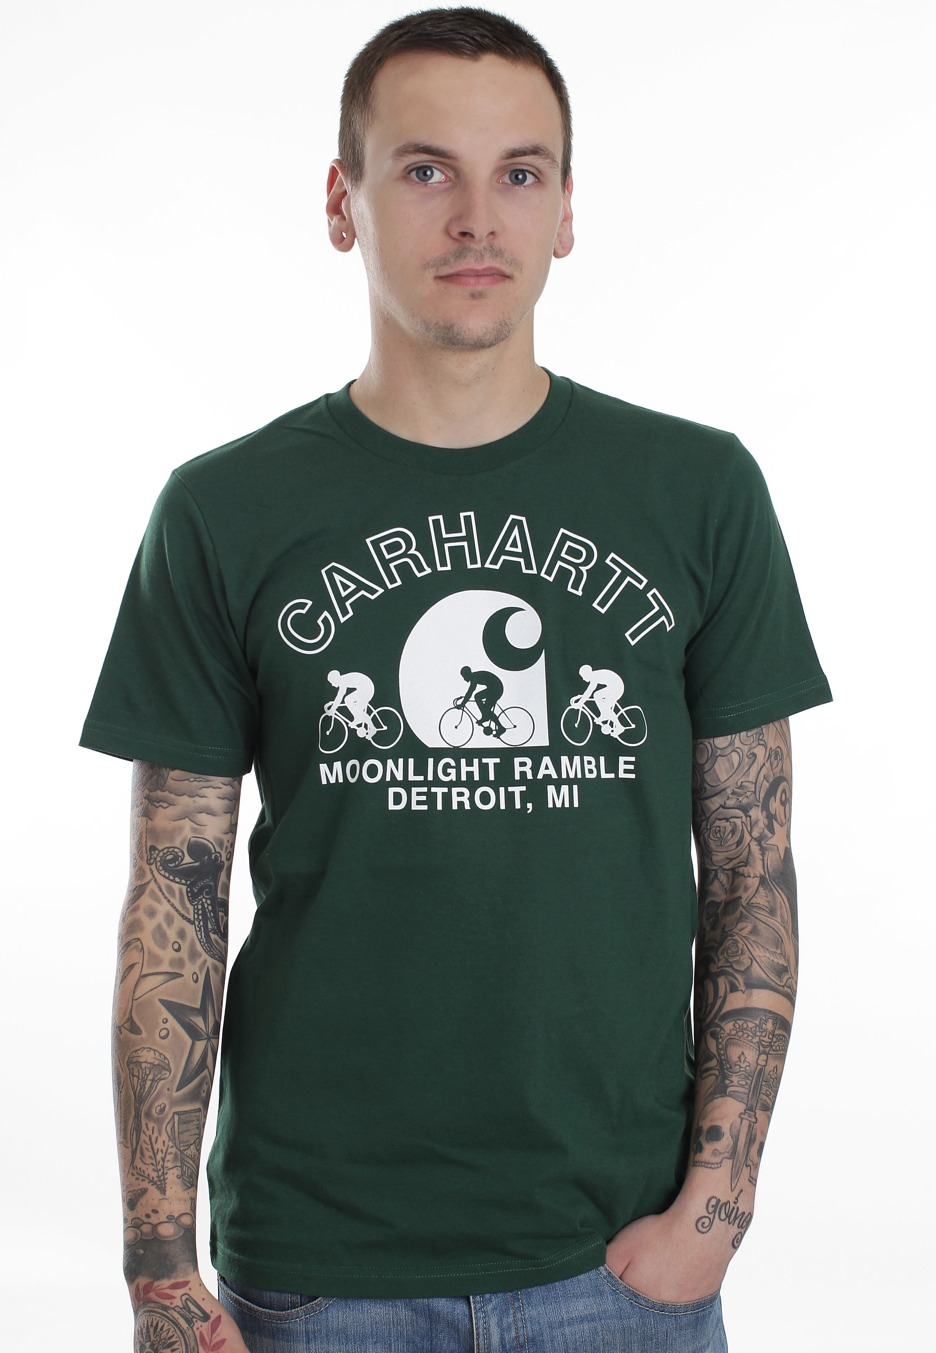 Carhartt wip moonlight fir white t shirt boutique for Carhartt burgundy t shirt